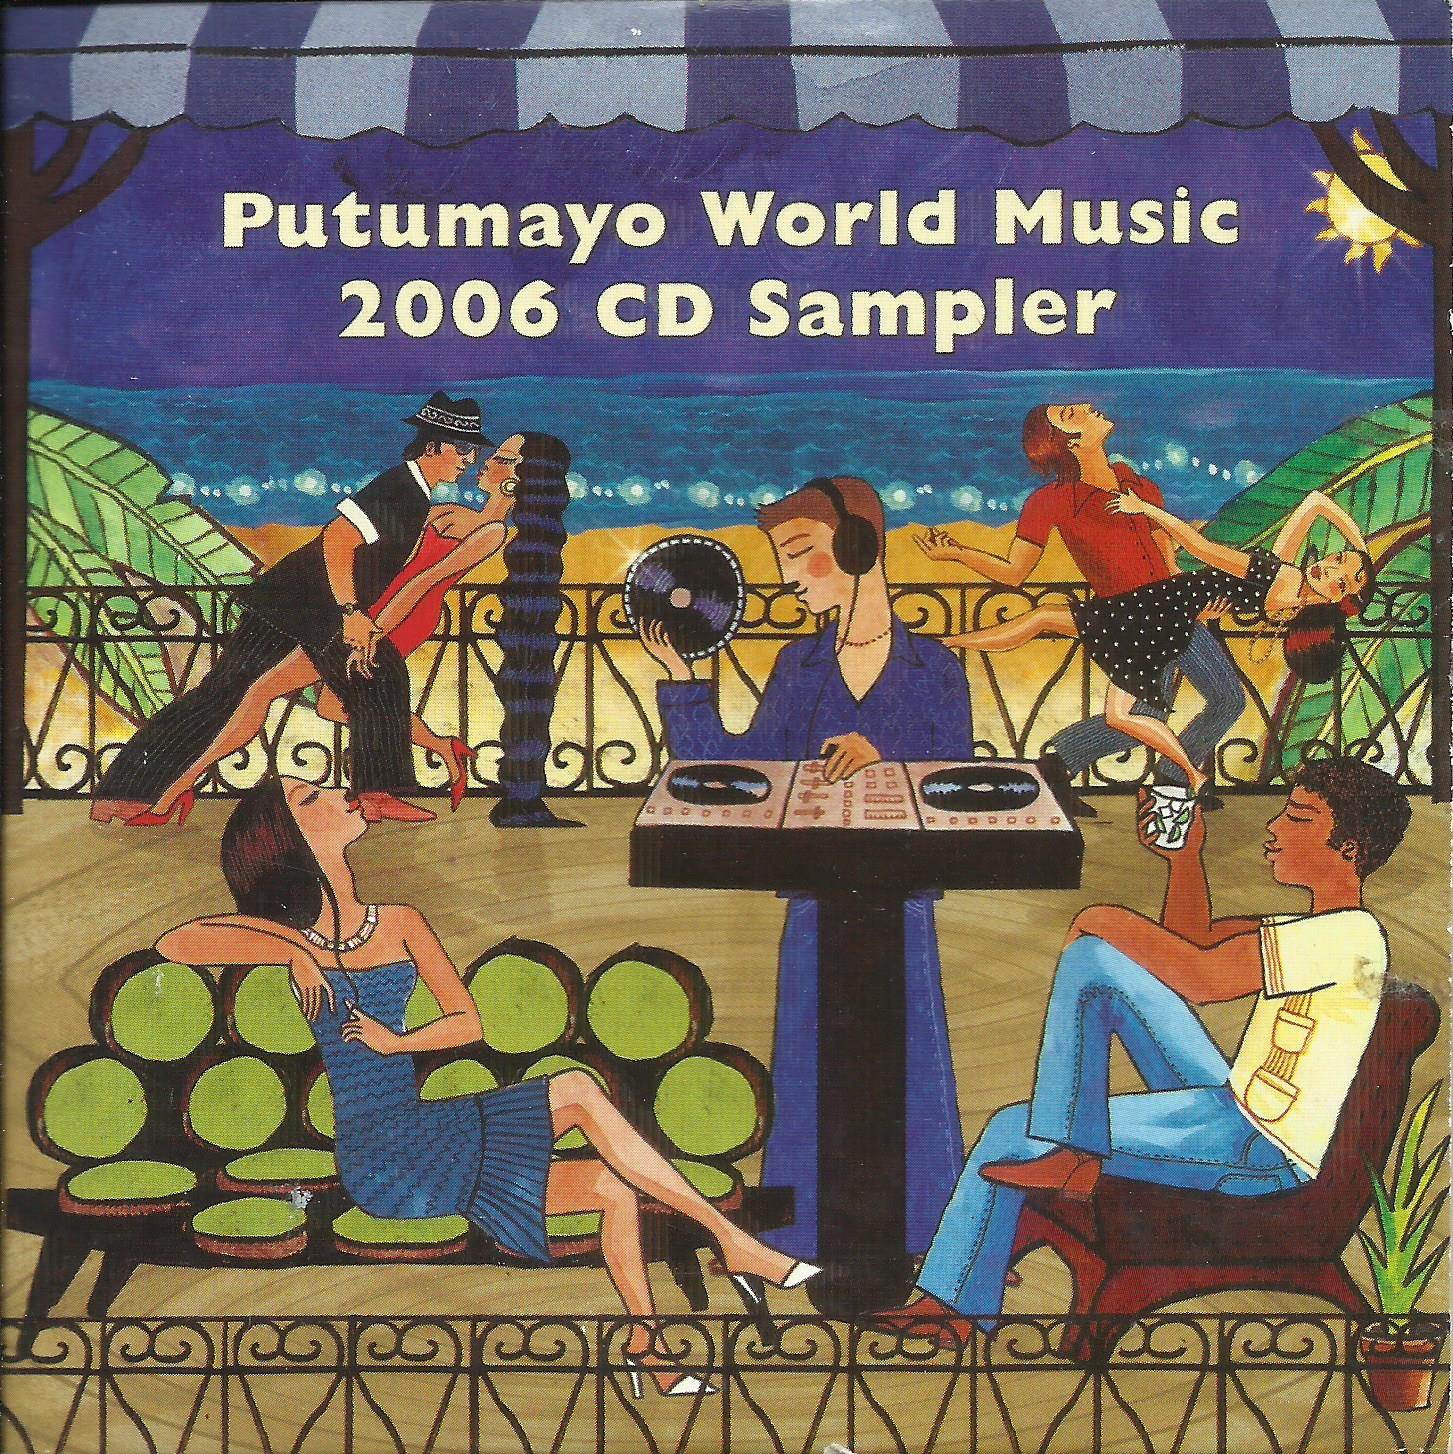 Putumayo World Music